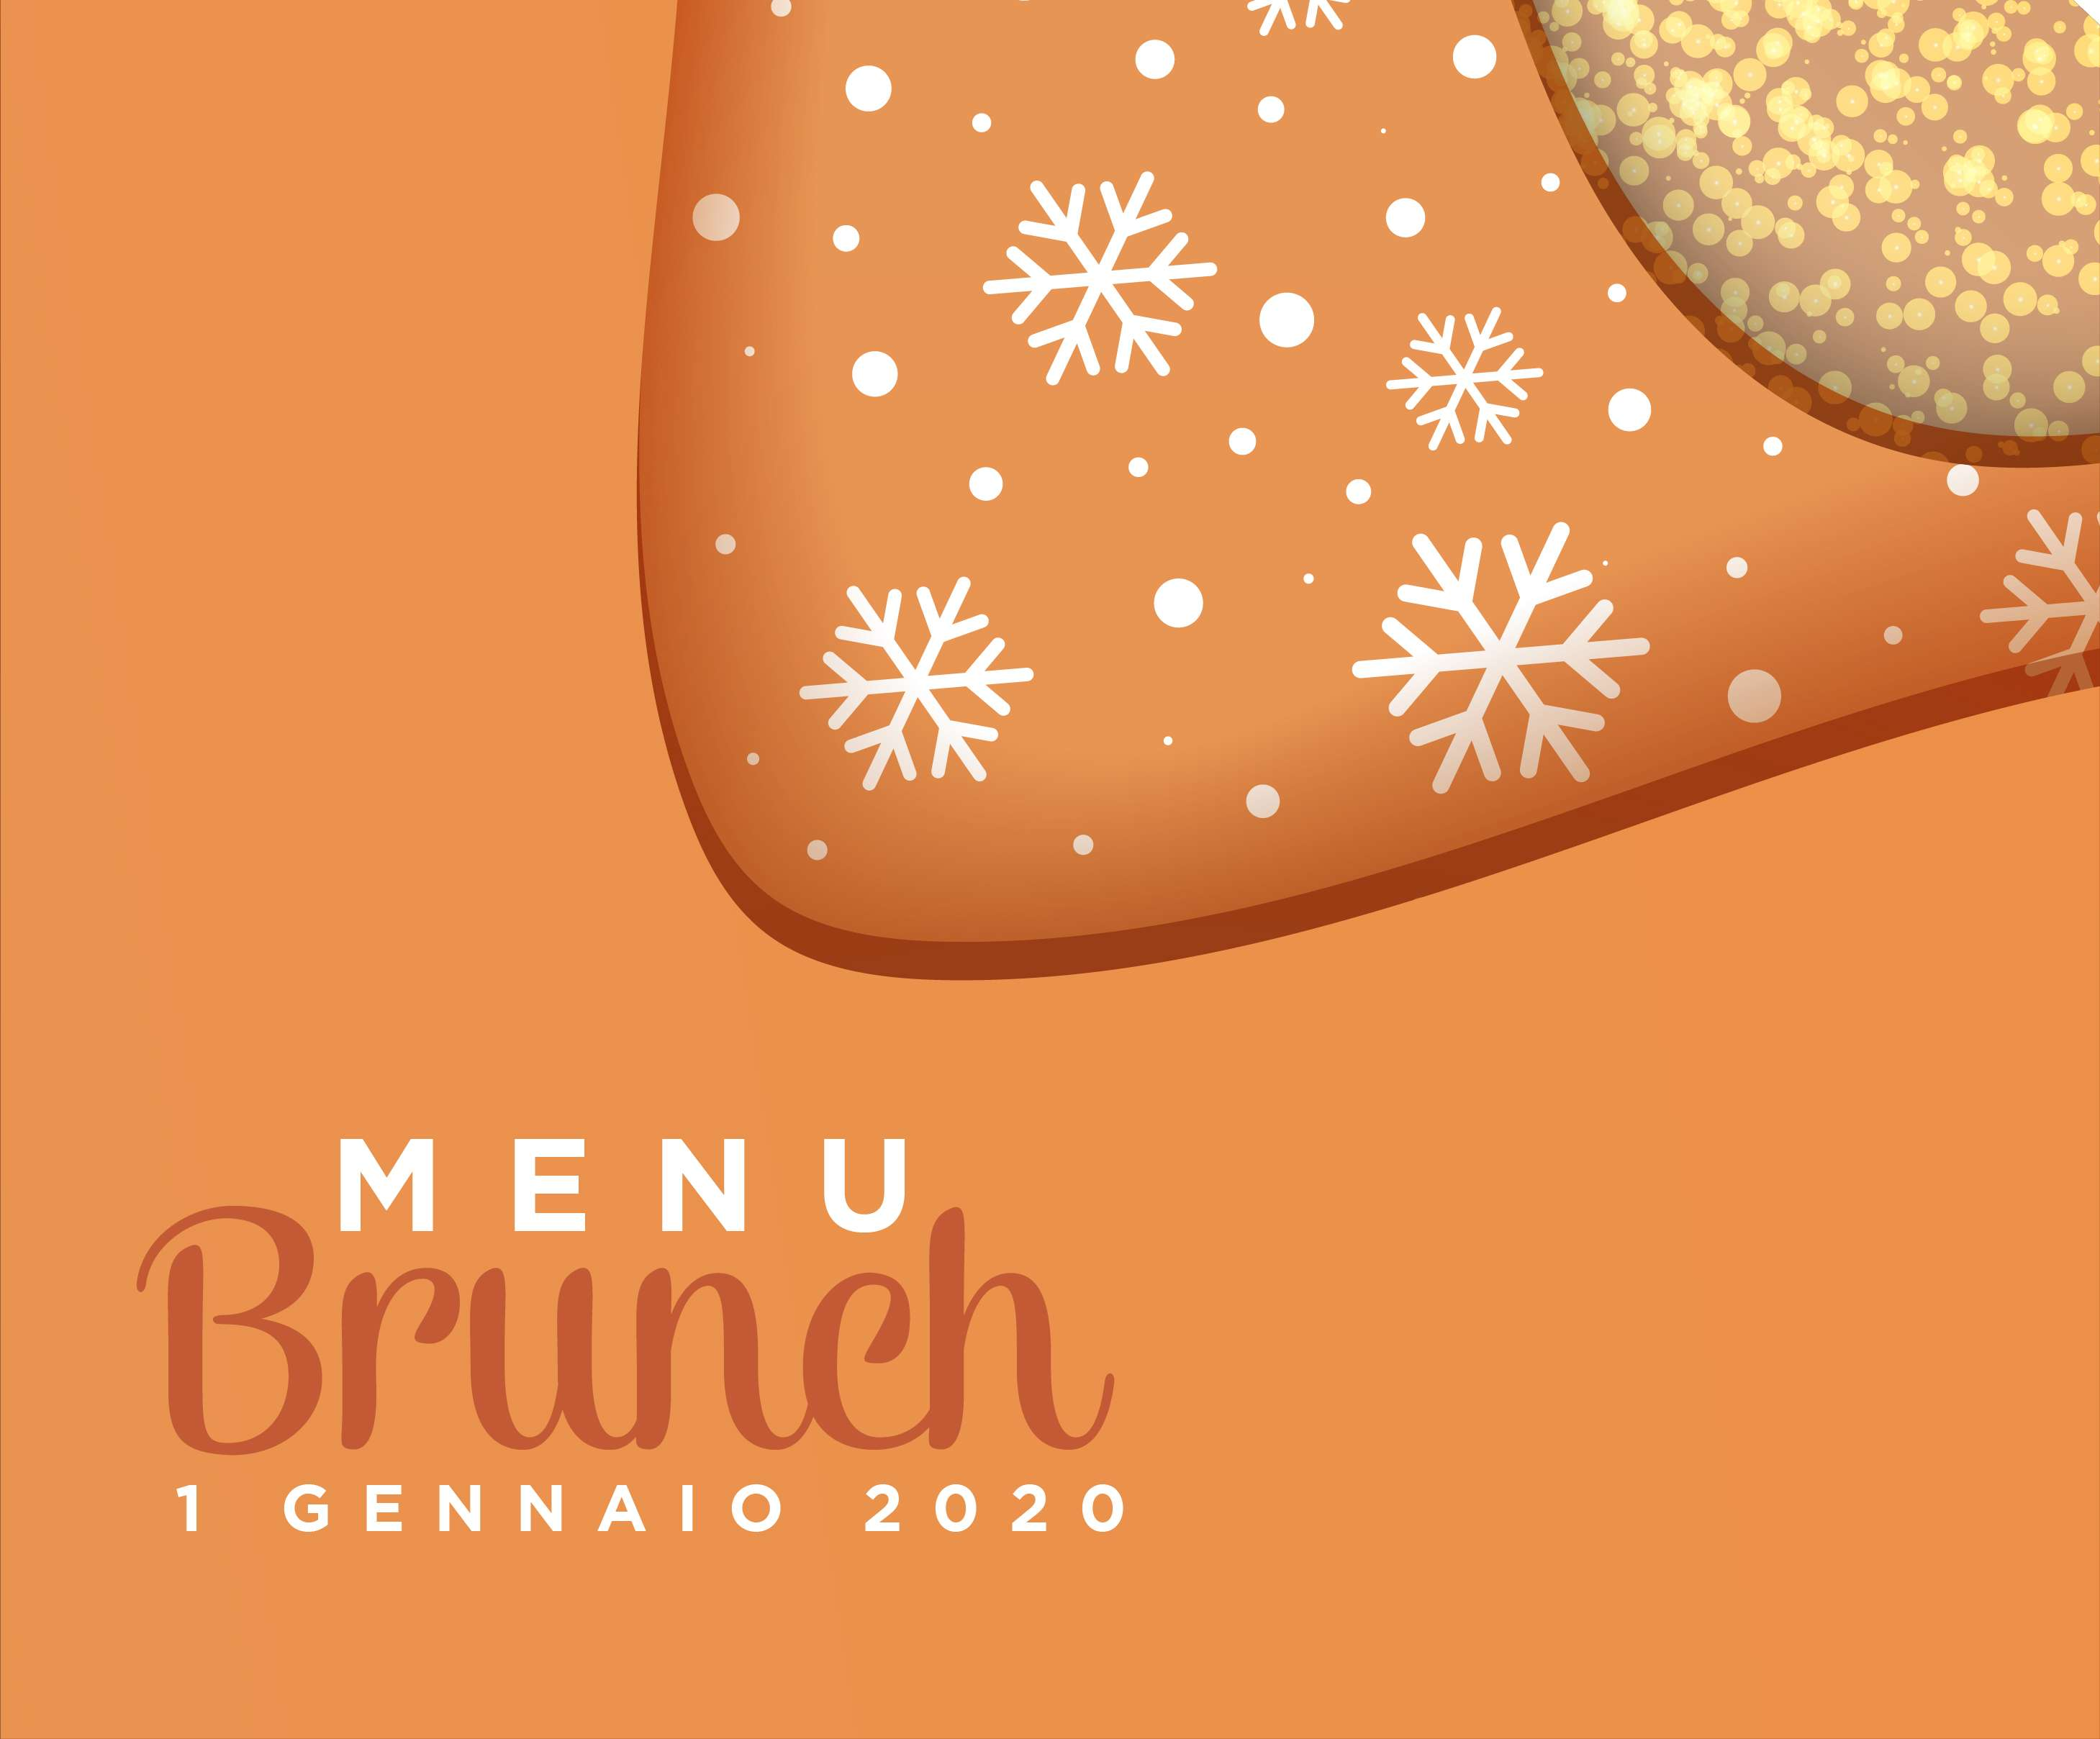 Menù Brunch dell'1.01.20